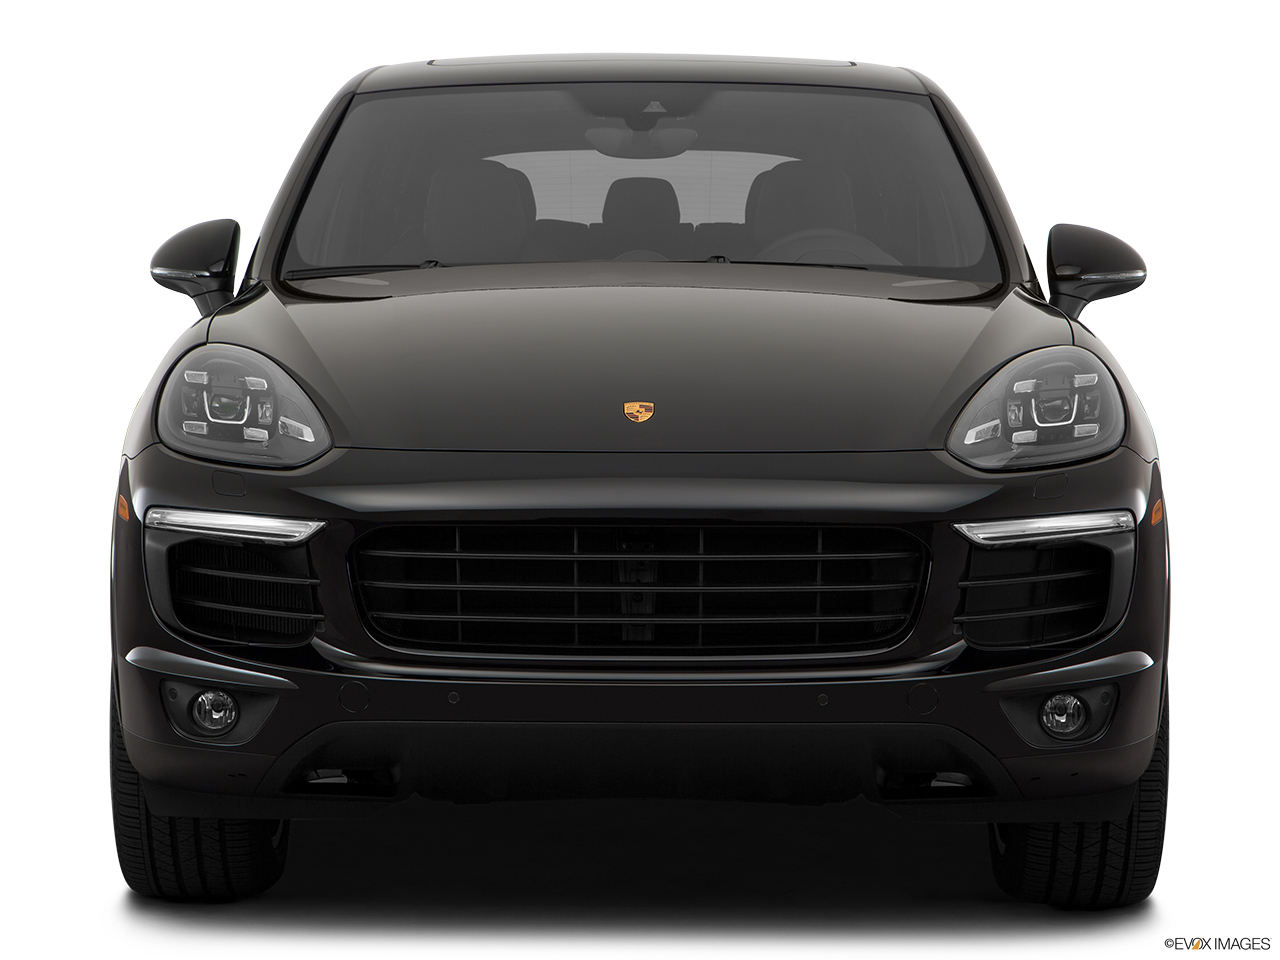 porsche cayenne 2017 s e hybrid platinum edition in qatar new car prices specs reviews. Black Bedroom Furniture Sets. Home Design Ideas